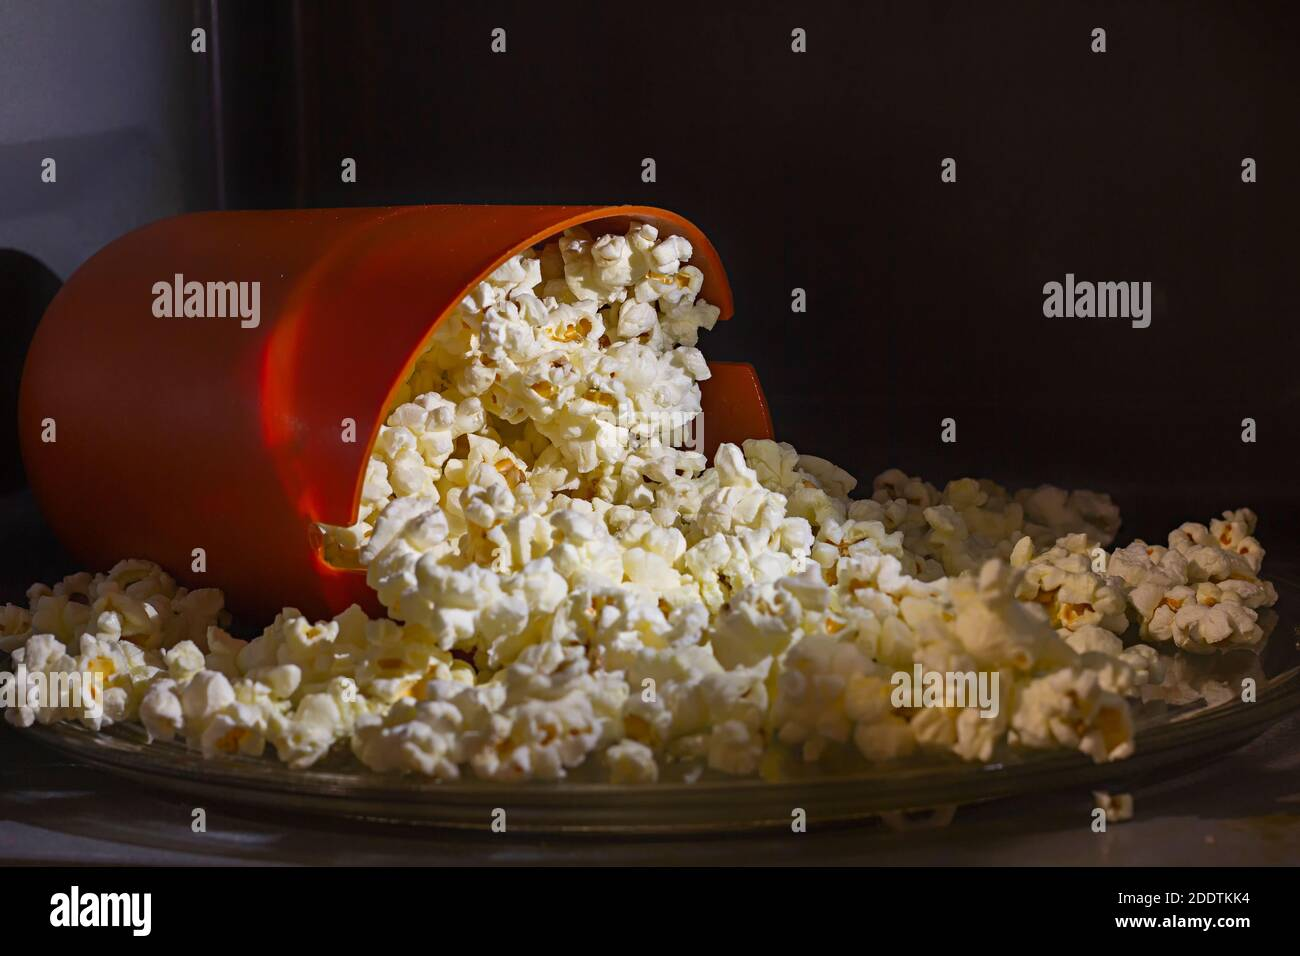 https www alamy com orange silicon bucket filled with homemade cooked popcorn inside a microwave oven special silicon bucket for popcorn microwave cooking at home image387160904 html